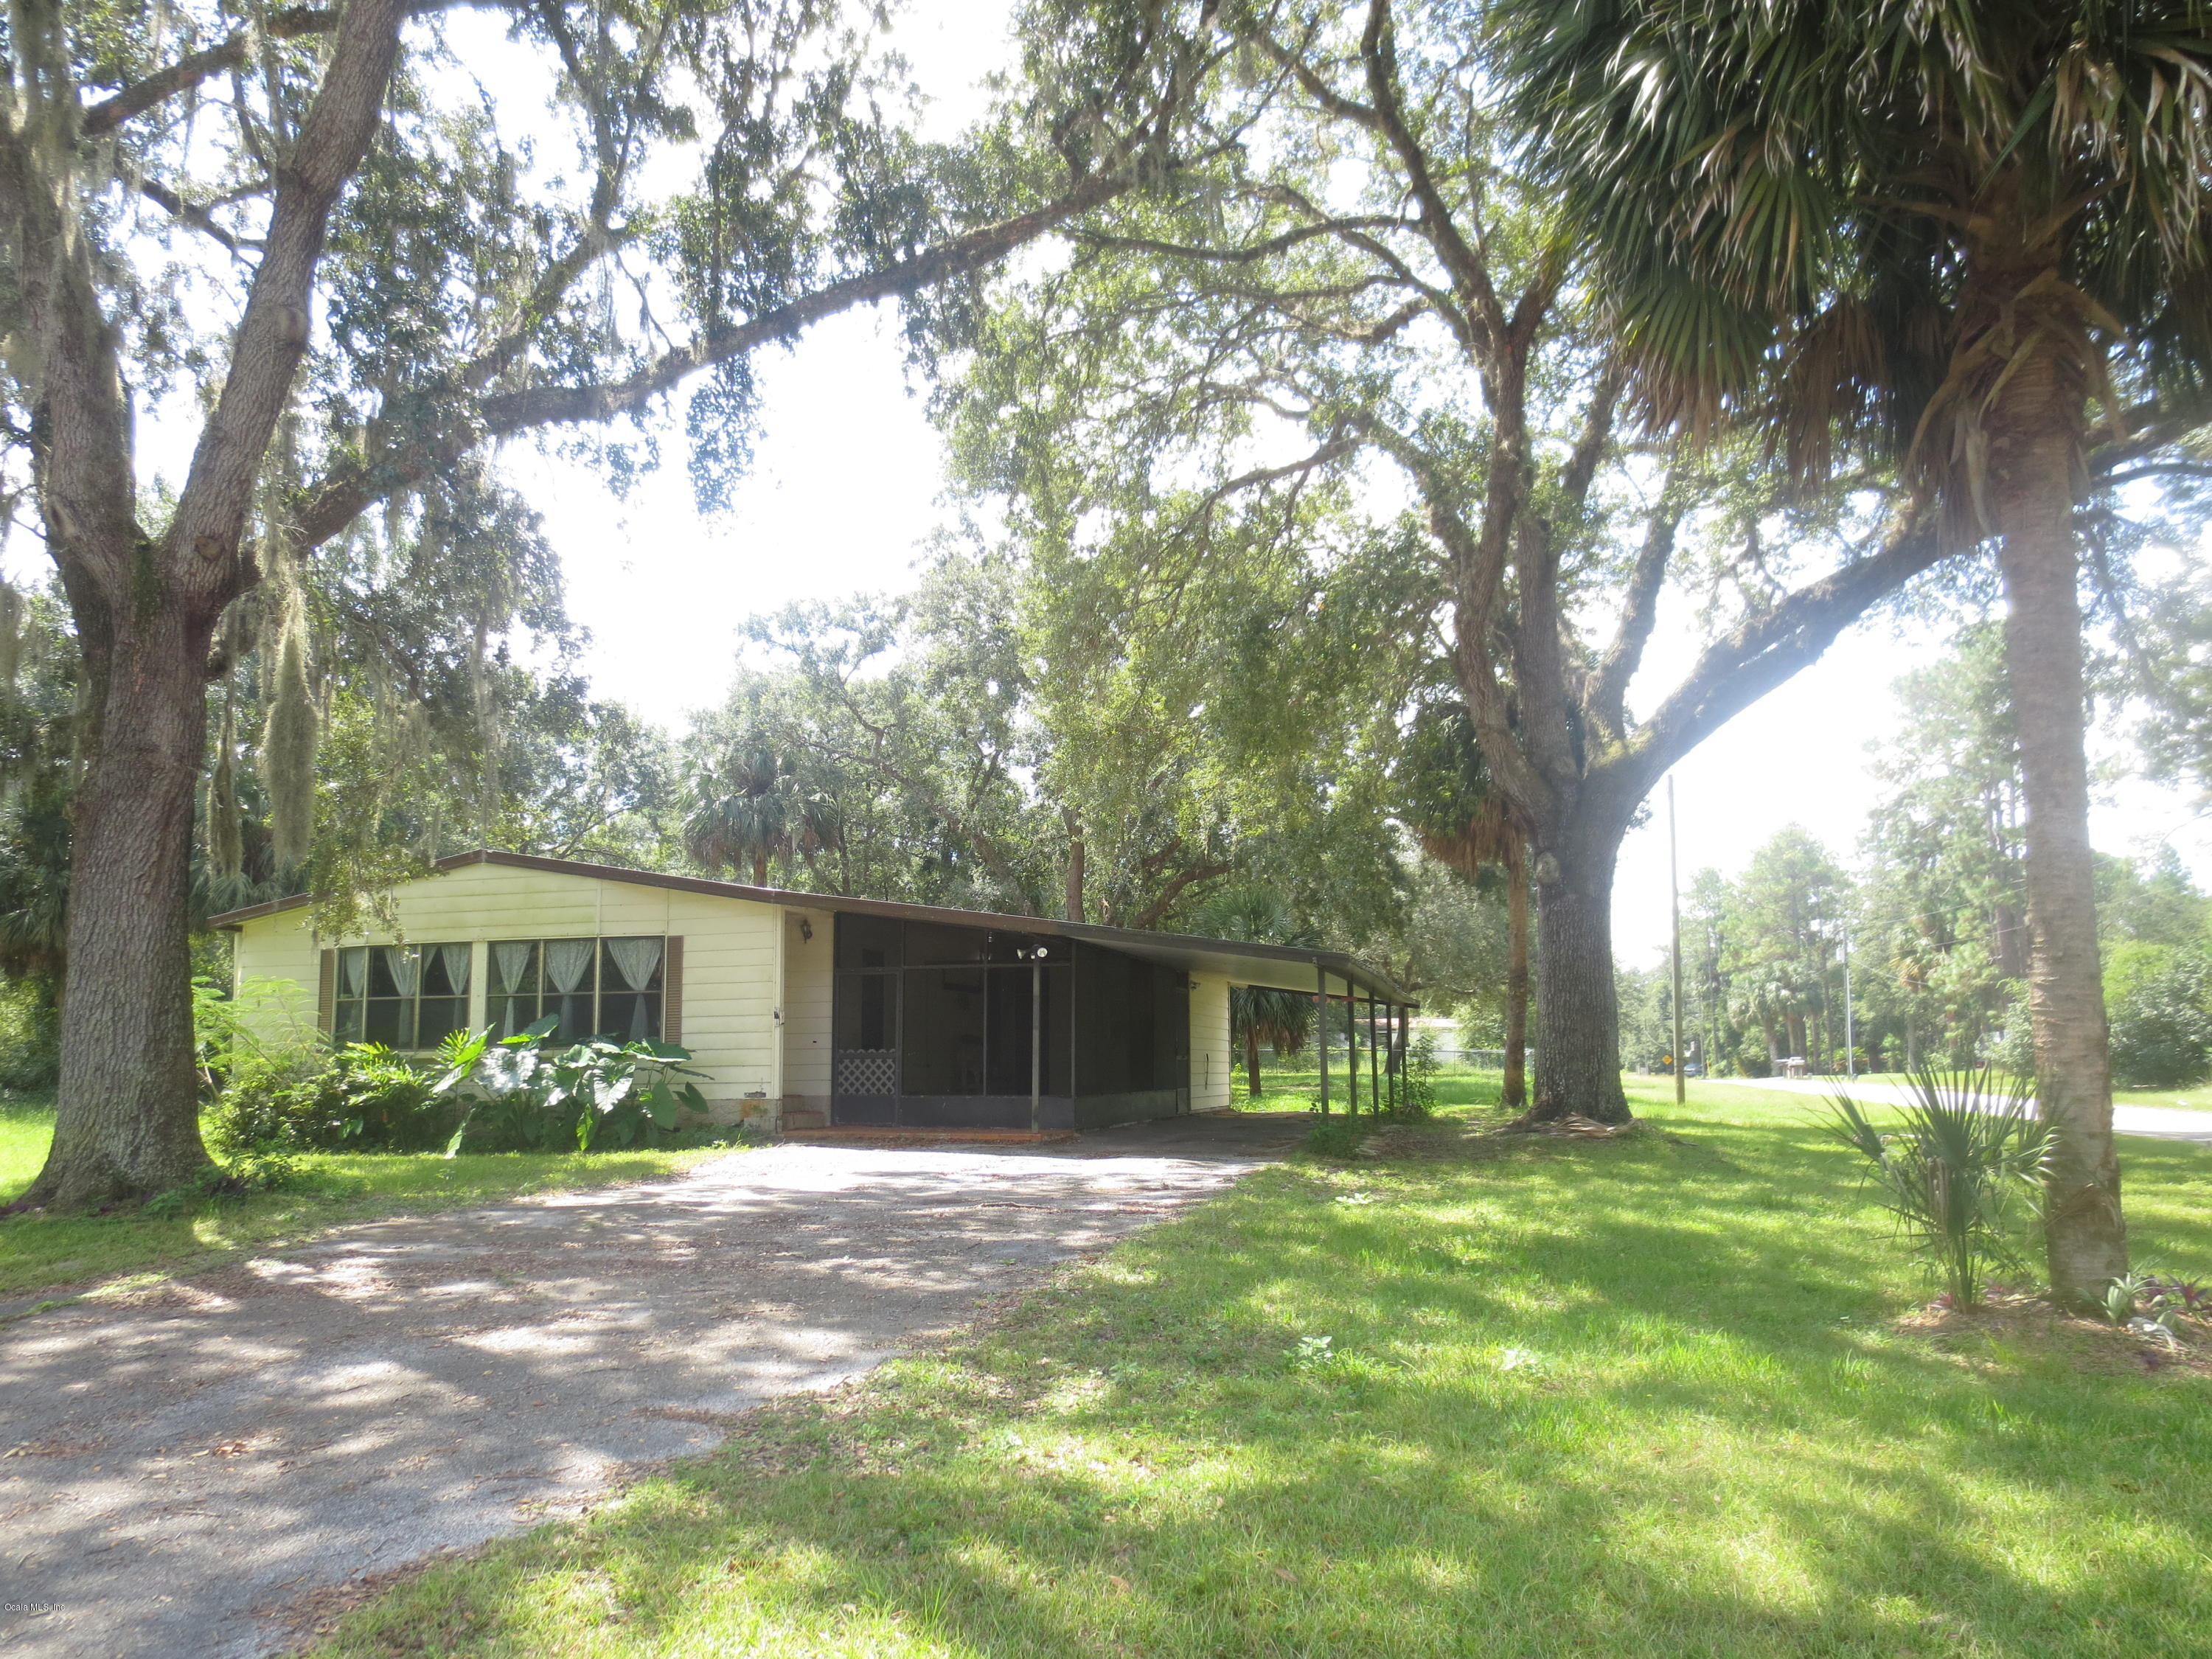 Remarkable 17550 Se 85Th Place Ocklawaha Fl 32179 Era Grizzard Real Estate Interior Design Ideas Gresisoteloinfo